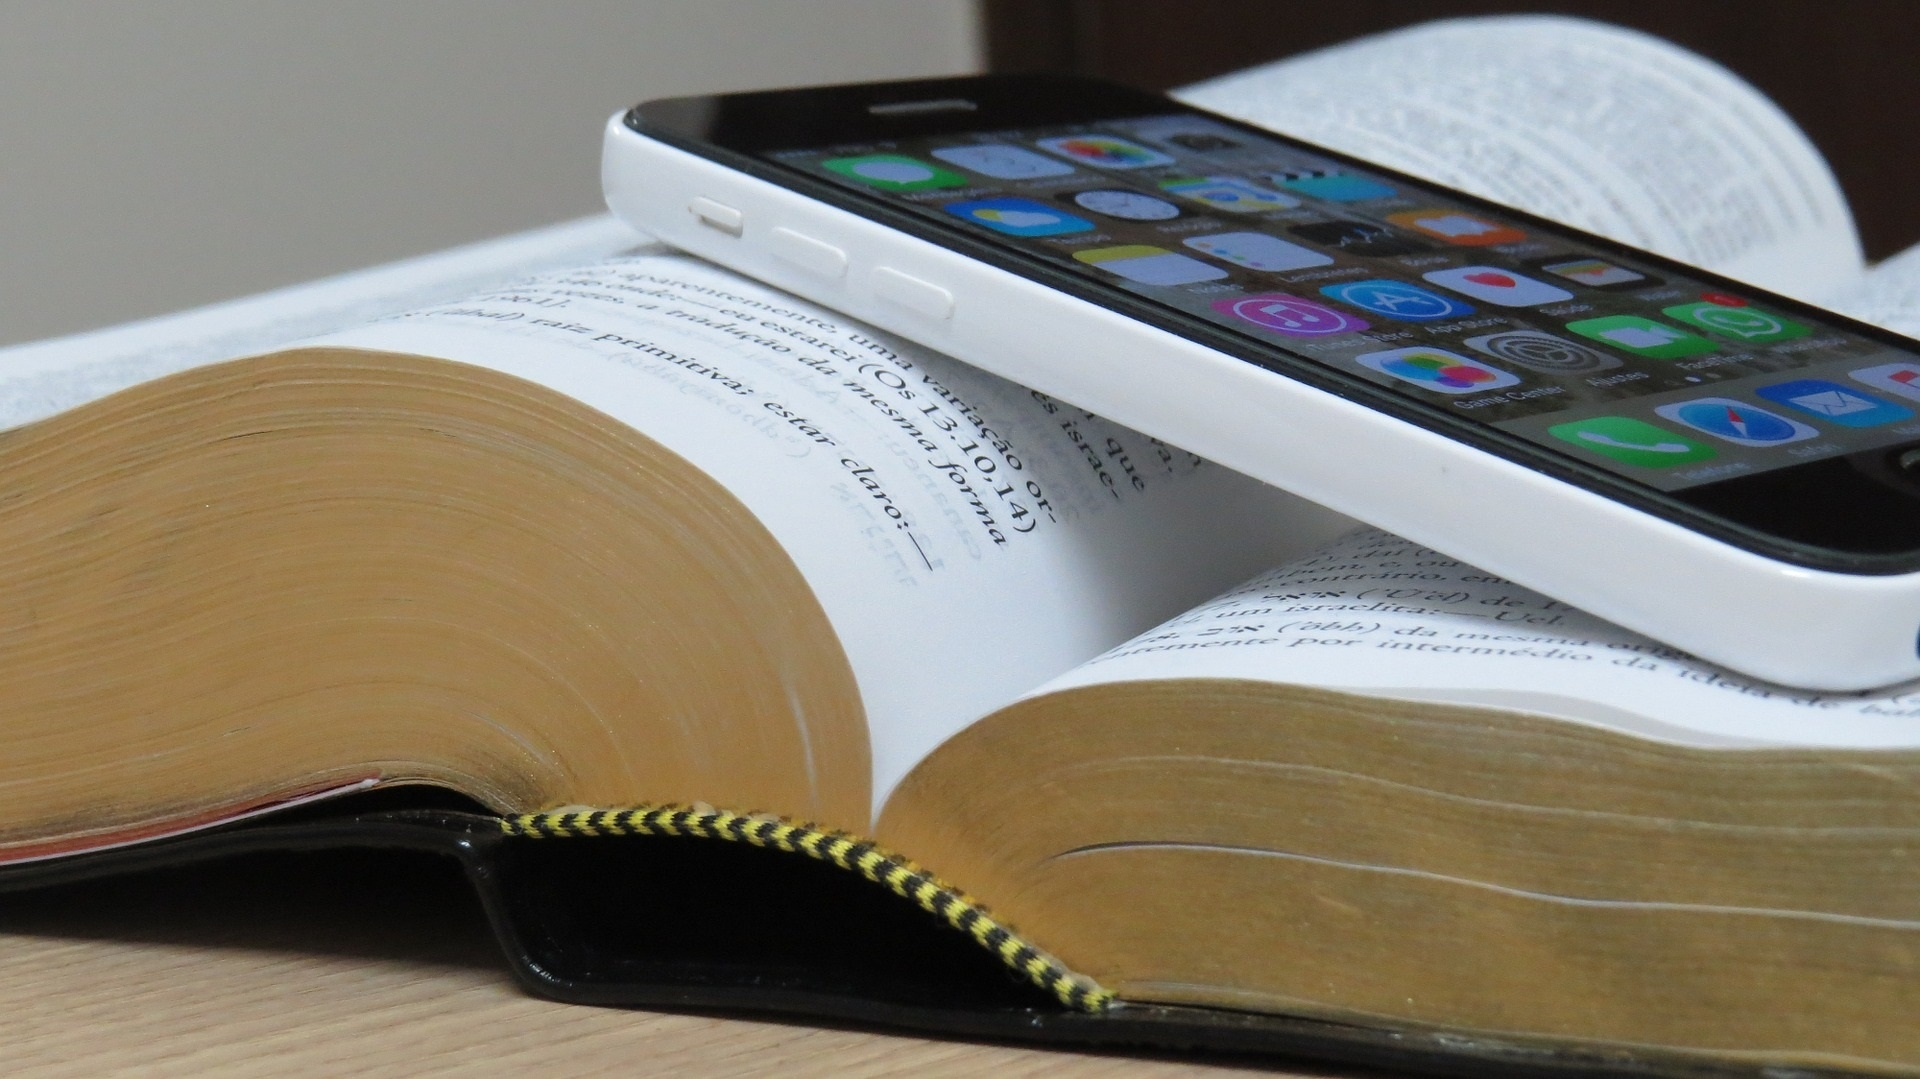 What do cell phones have to do with Lent?